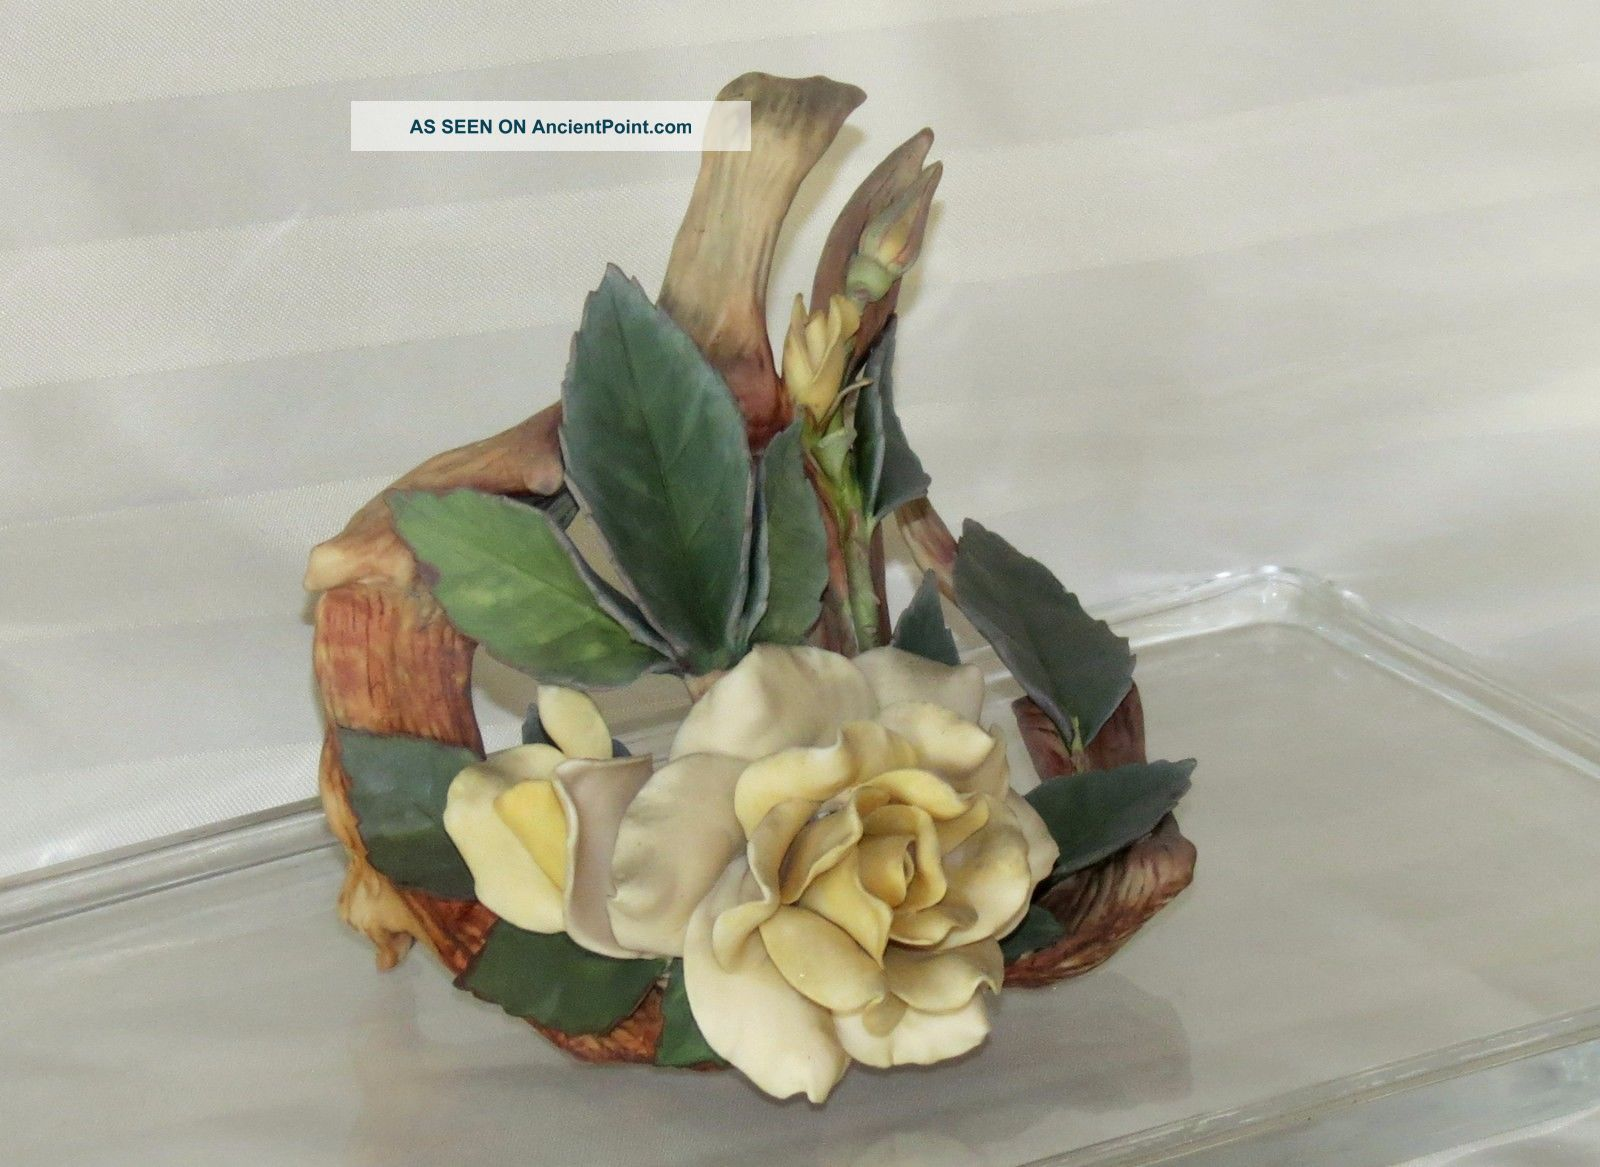 Vintage Cybis Bisque Porcelain Rose And Twig Flower Figurine Figurines photo